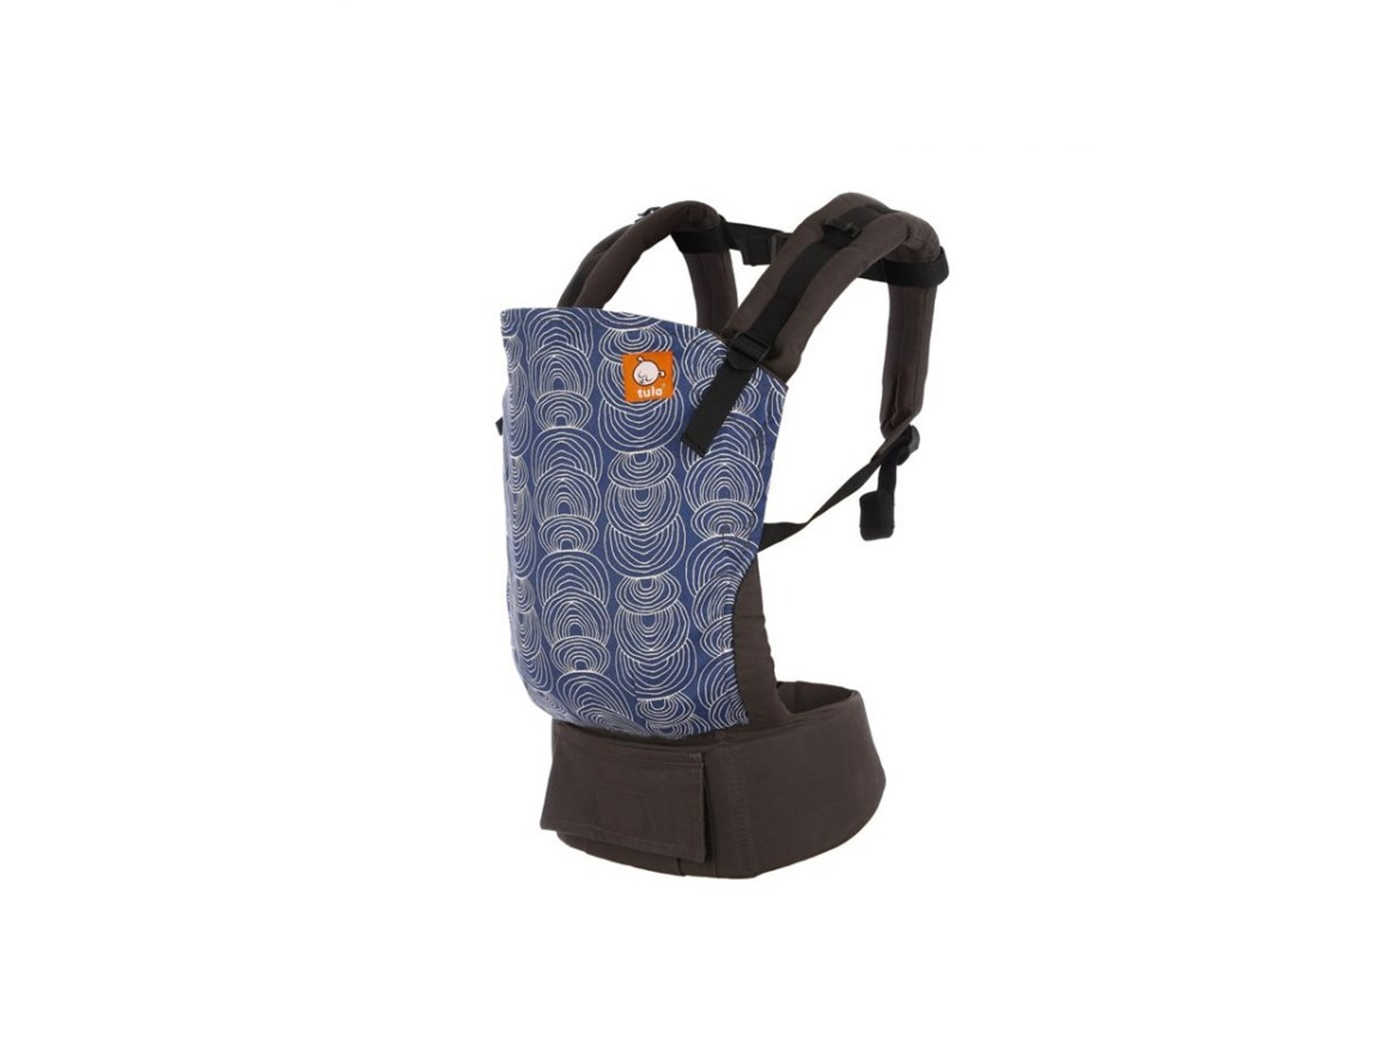 babytula  standardd   canvas  carrier   ripple